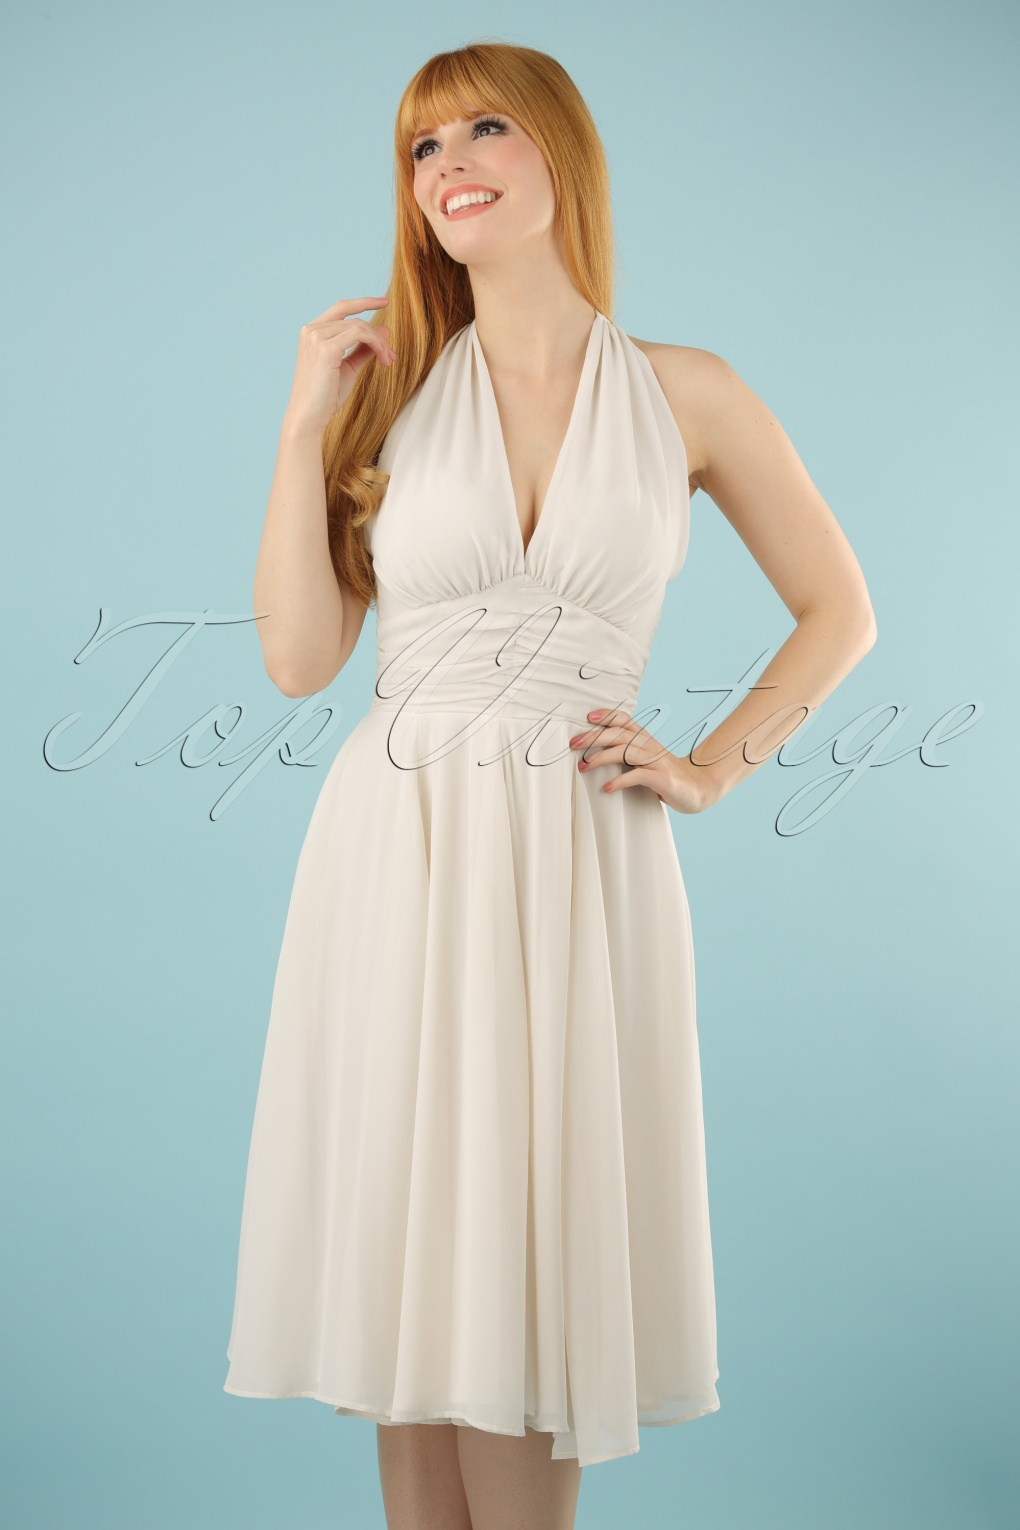 Vintage Inspired Cocktail Dresses, Party Dresses 50s Monroe Dress in Ivory White £49.58 AT vintagedancer.com